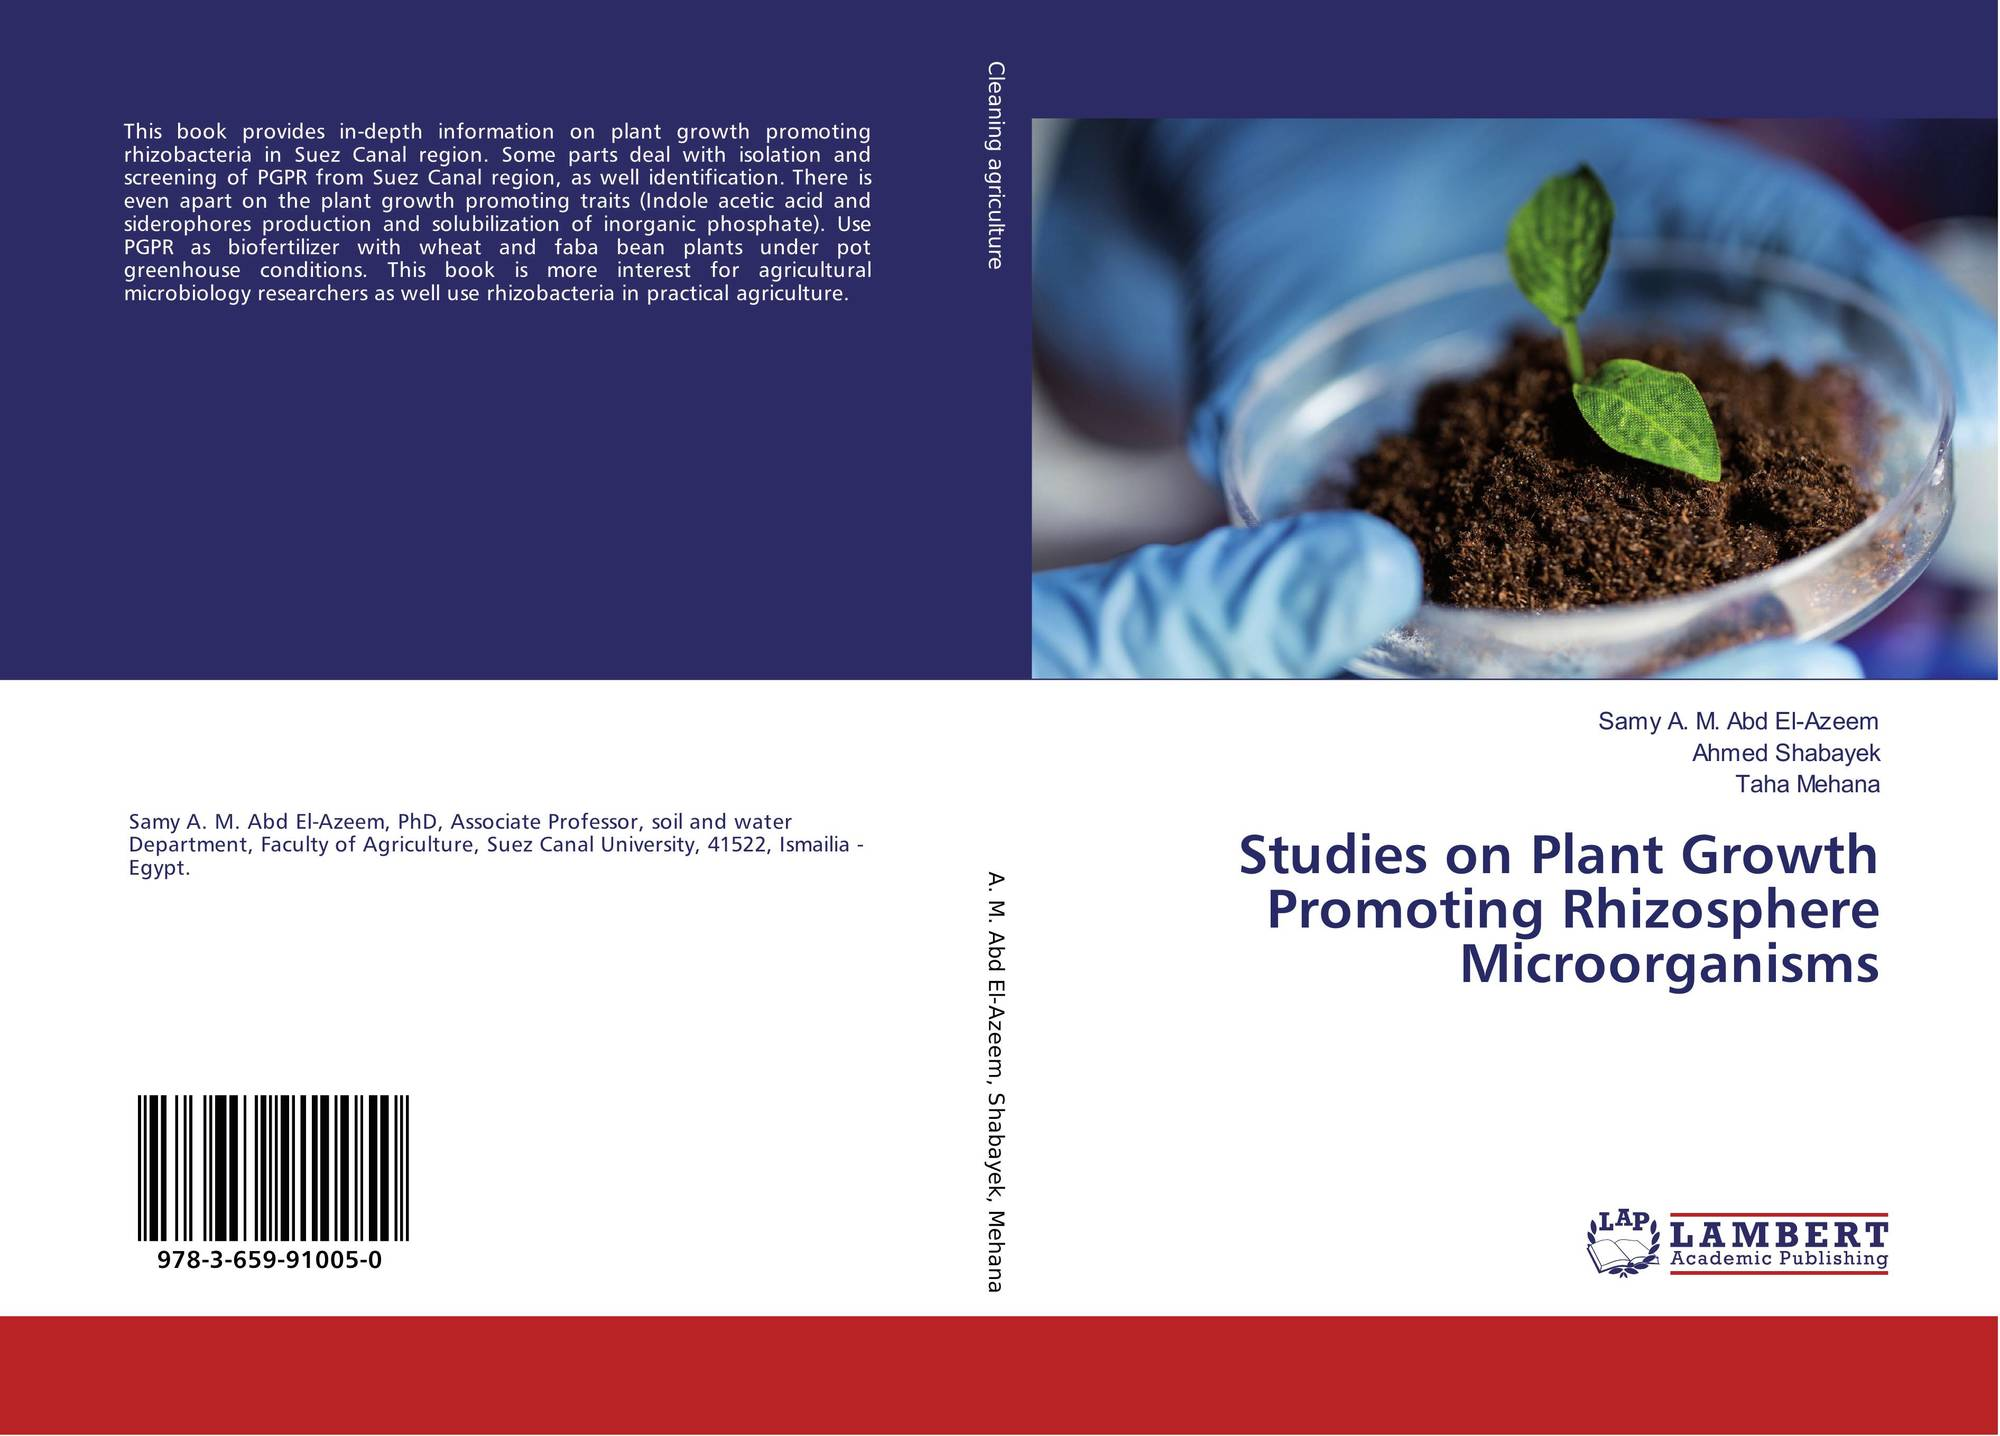 pgpr thesis Plant growth-promoting rhizobacteria (pgpr): their potential as antagonists and biocontrol agents  cial free-living soil bacteria are usually referred to as plant growth-promoting rhizobacteria (pgpr, kloepper et al, 1989) independent of the mechanisms of vegetal growth  2007, phd thesis, leiden university, the netherlands), (3.